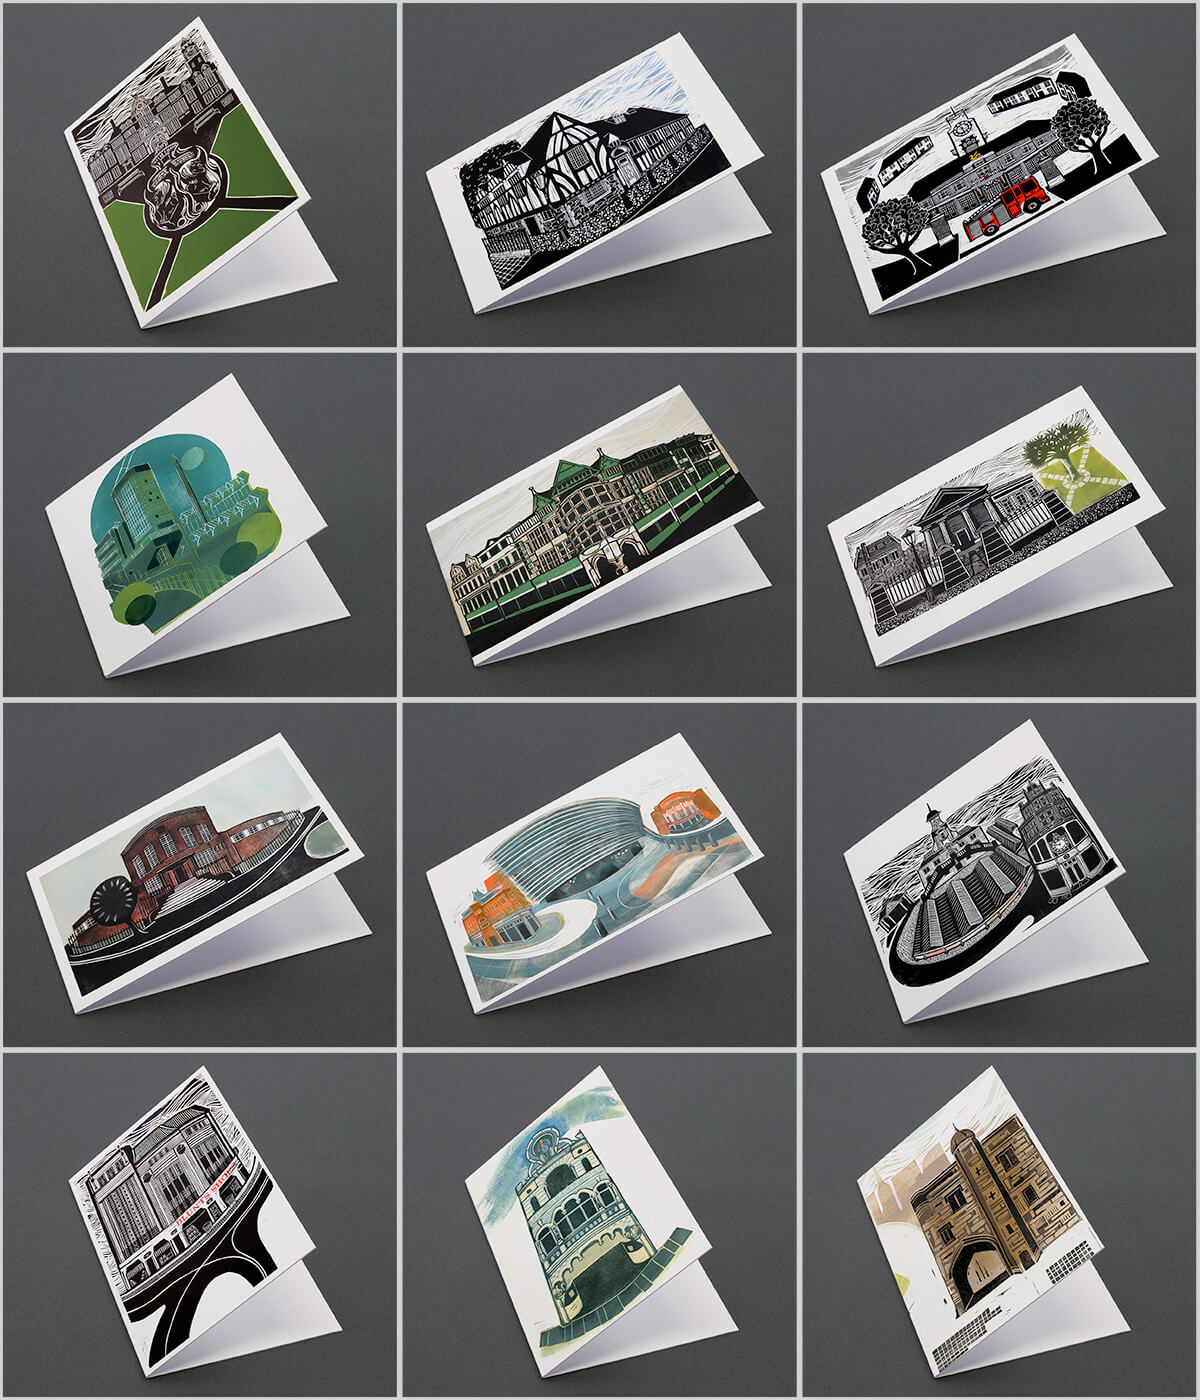 Leicester Landmarks, a pack of linocut greeting cards by Sarah Kirby